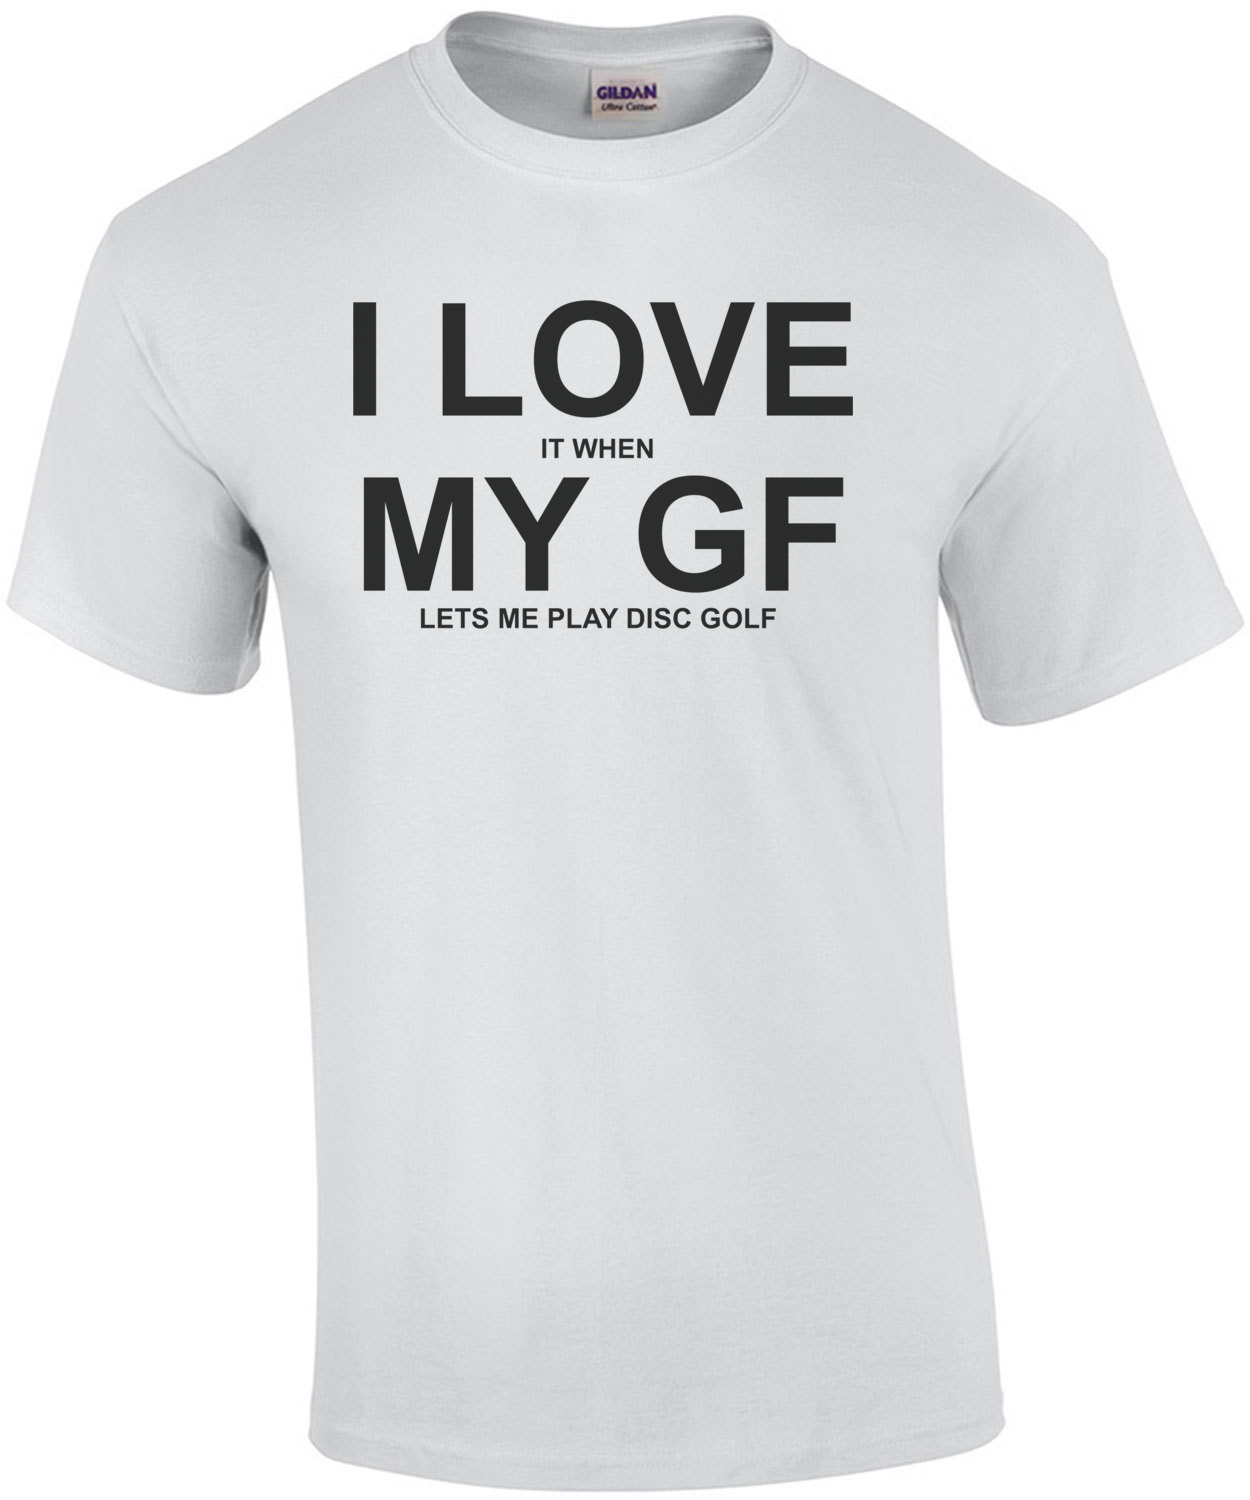 I Love It When My Girlfriend Lets Me Play Disc Golf T-Shirt